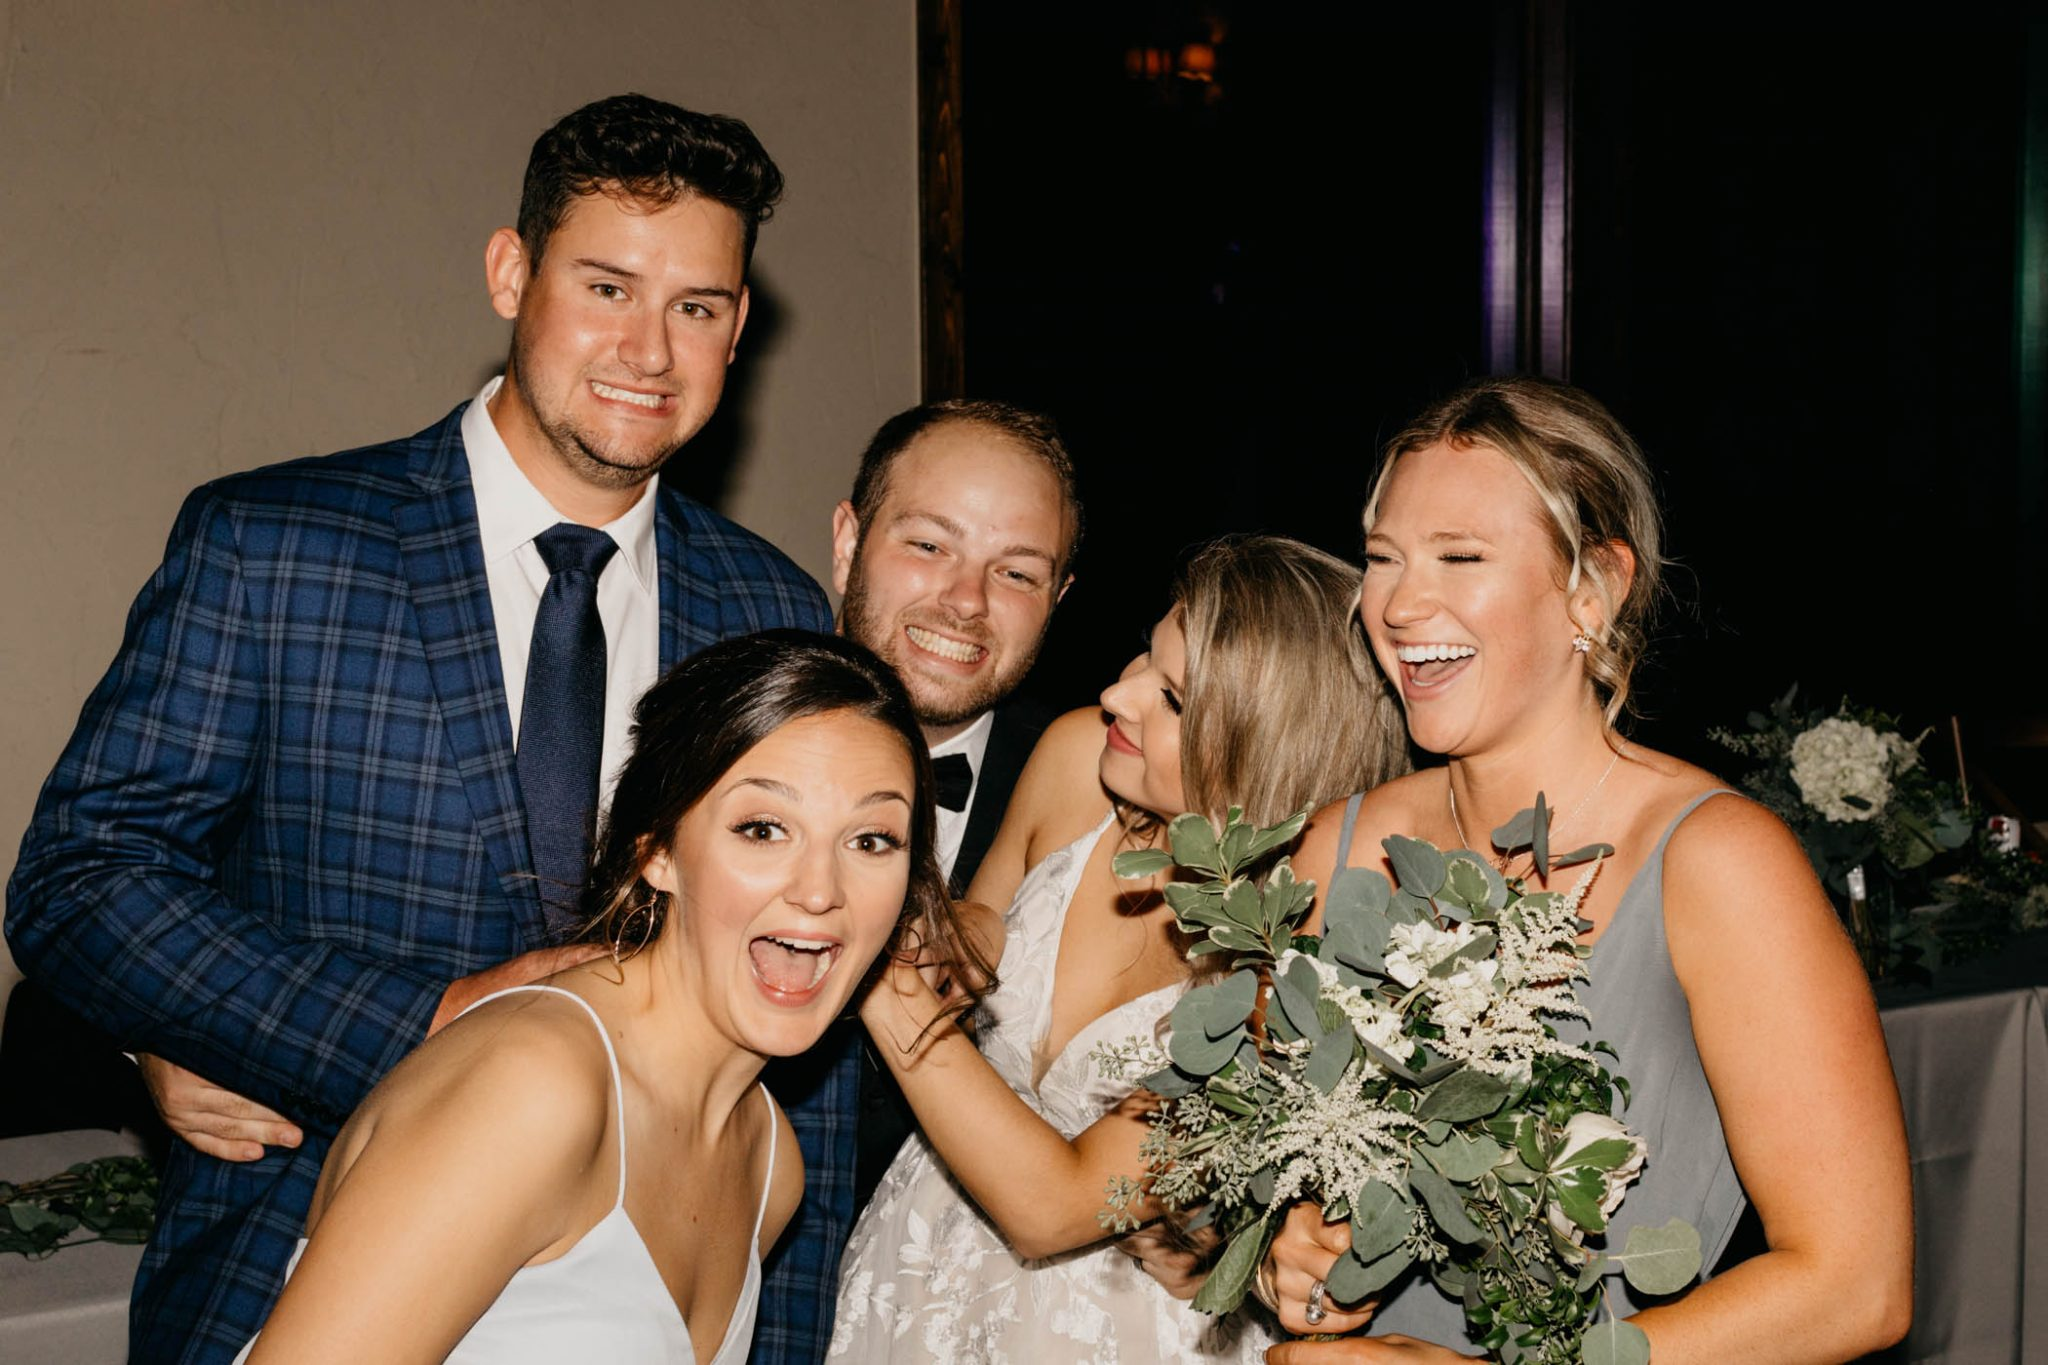 bride and groom take pictures with friends during wedding reception